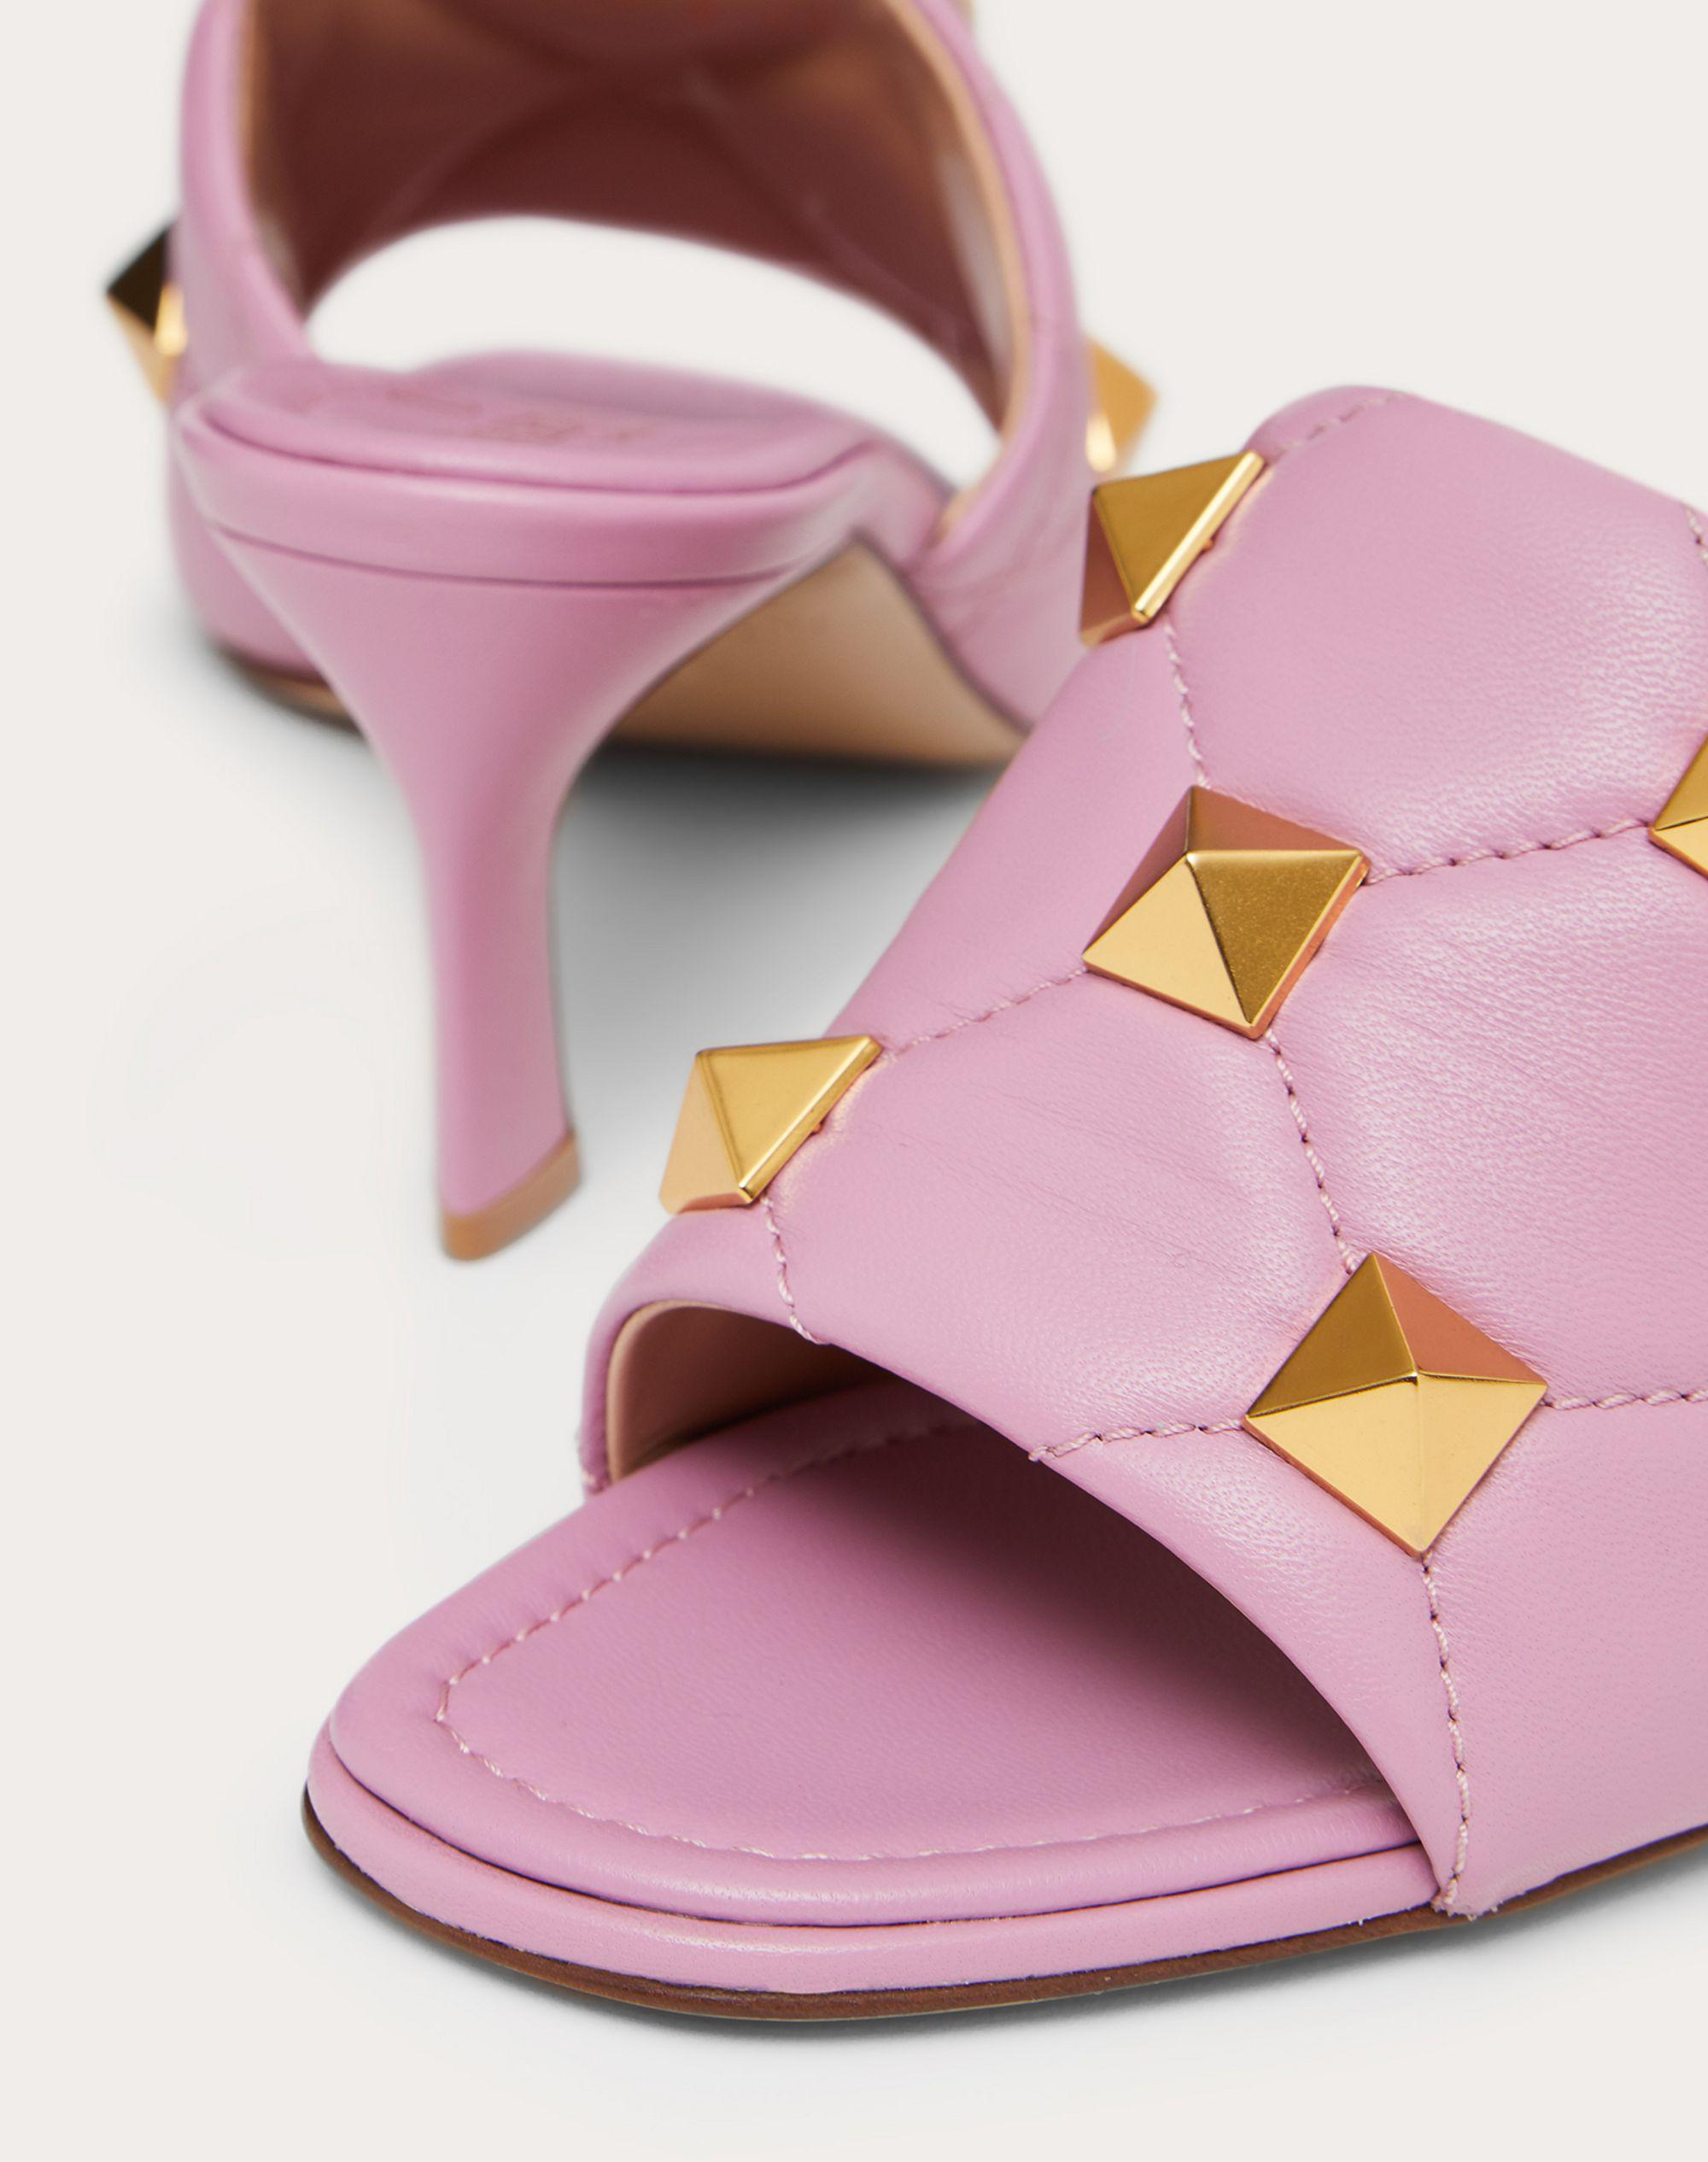 ROMAN STUD SLIDE SANDAL IN QUILTED NAPPA 65 MM 4